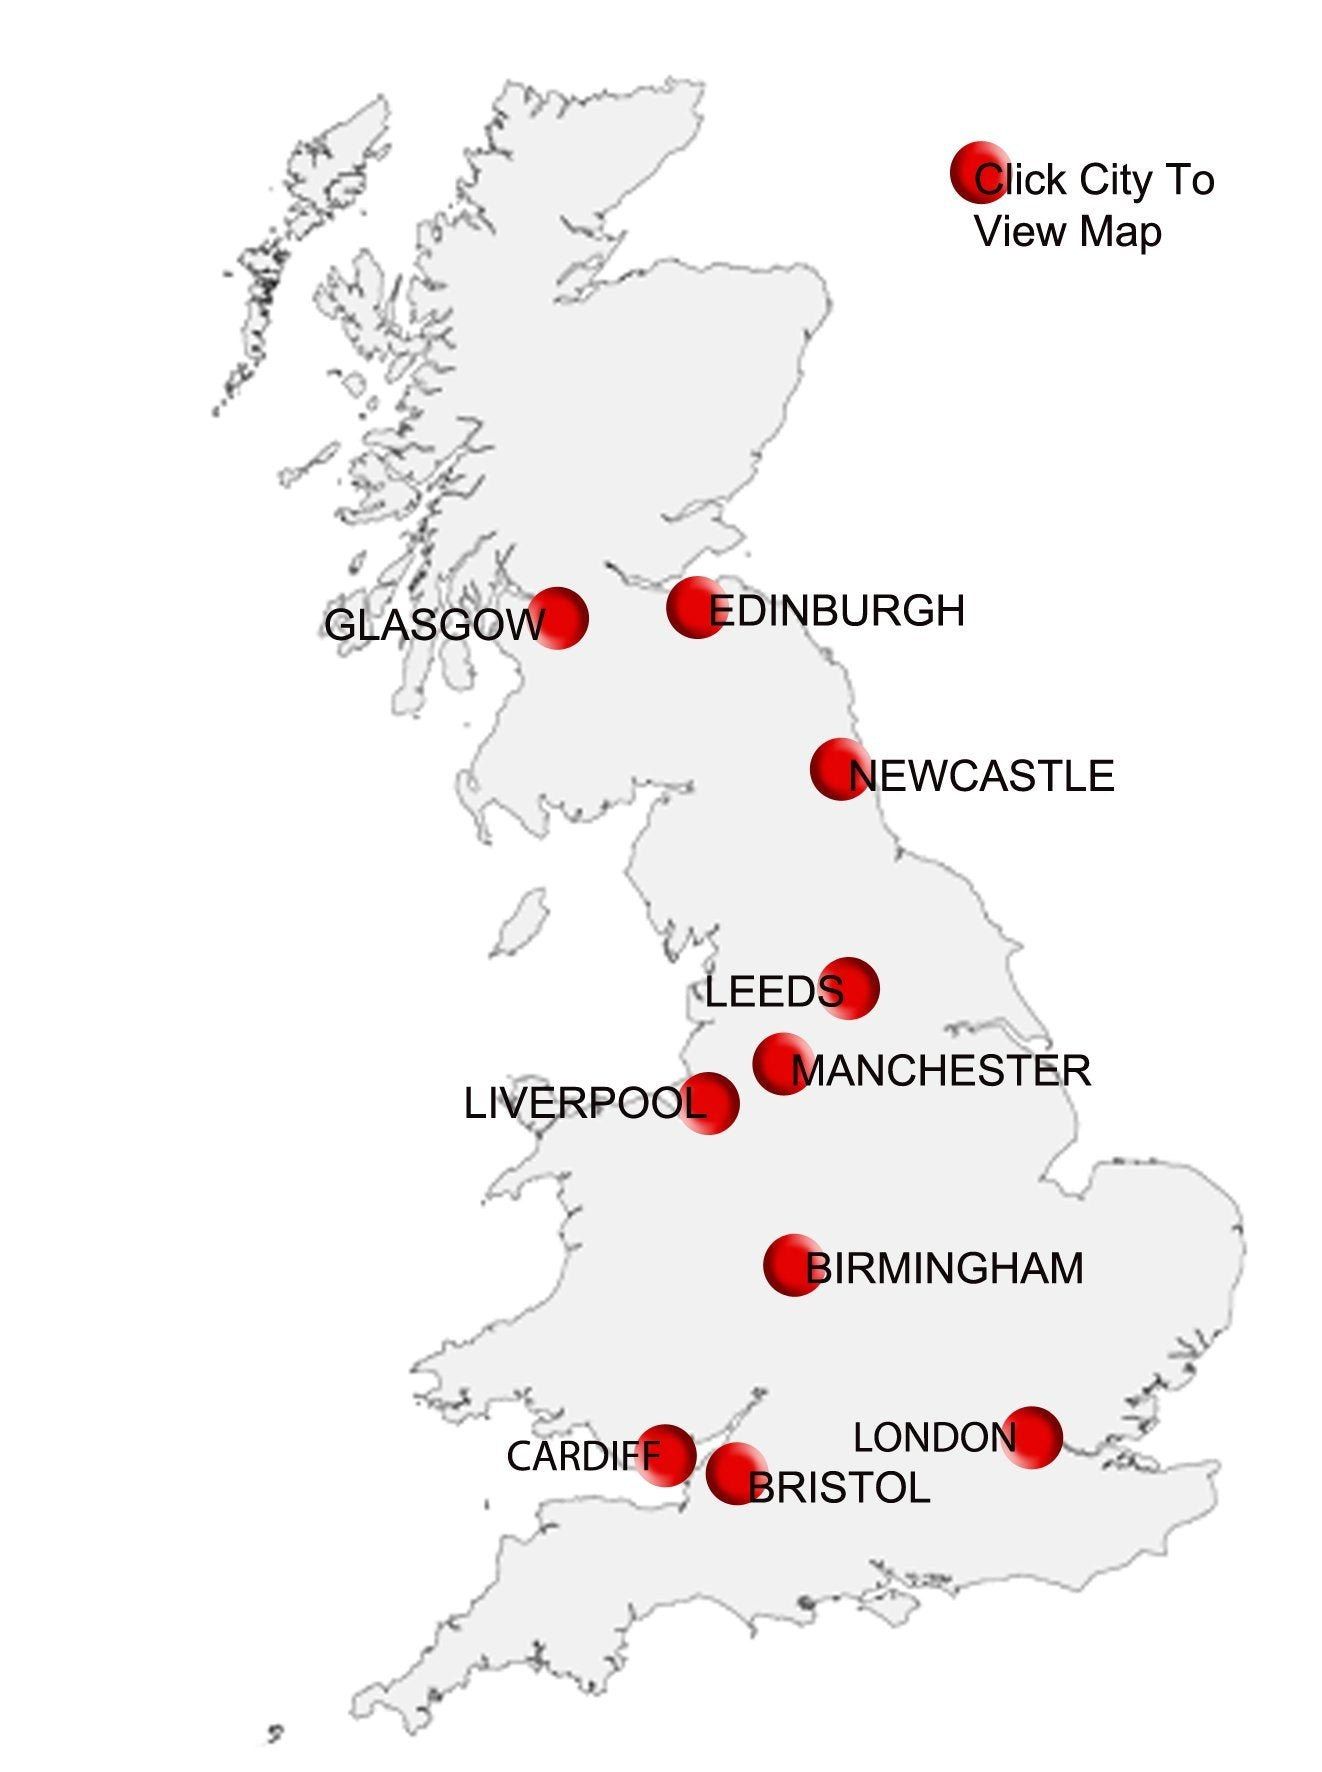 Map Of Major Uk Cities.City Centre Maps Postcode Sector Map Uk Map Marketing